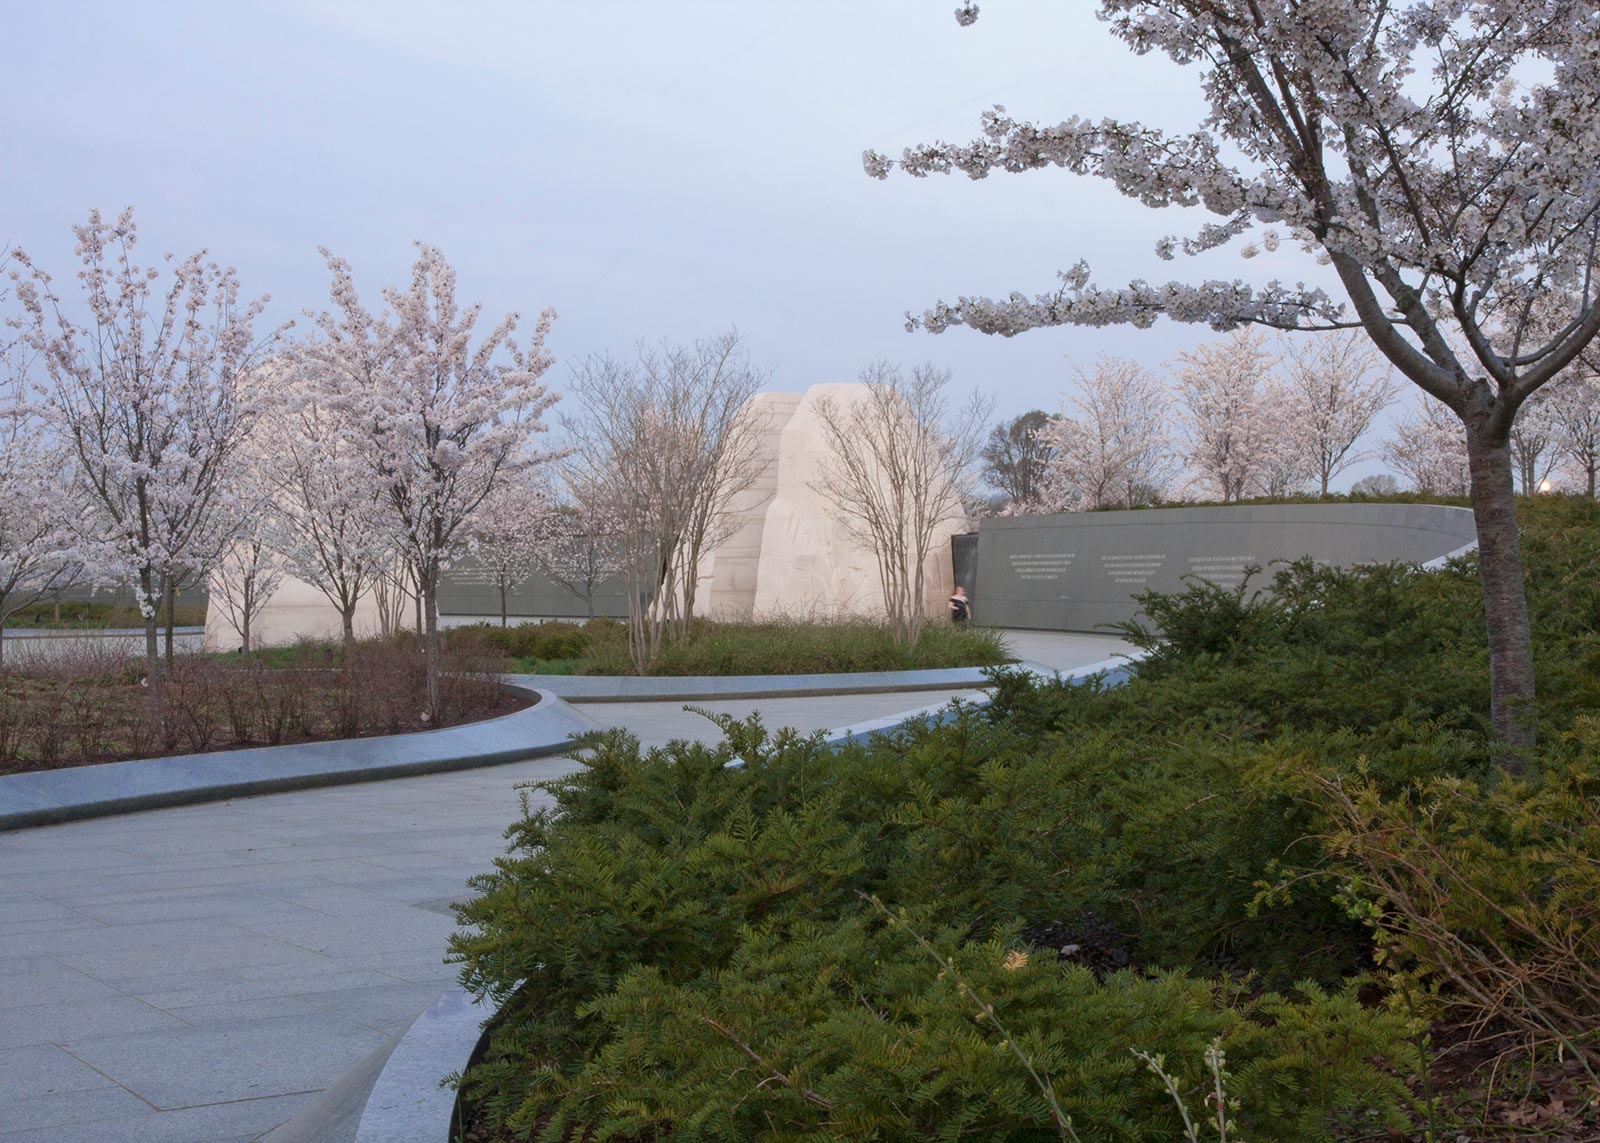 Martin Luther King, Jr. National Memorial 2